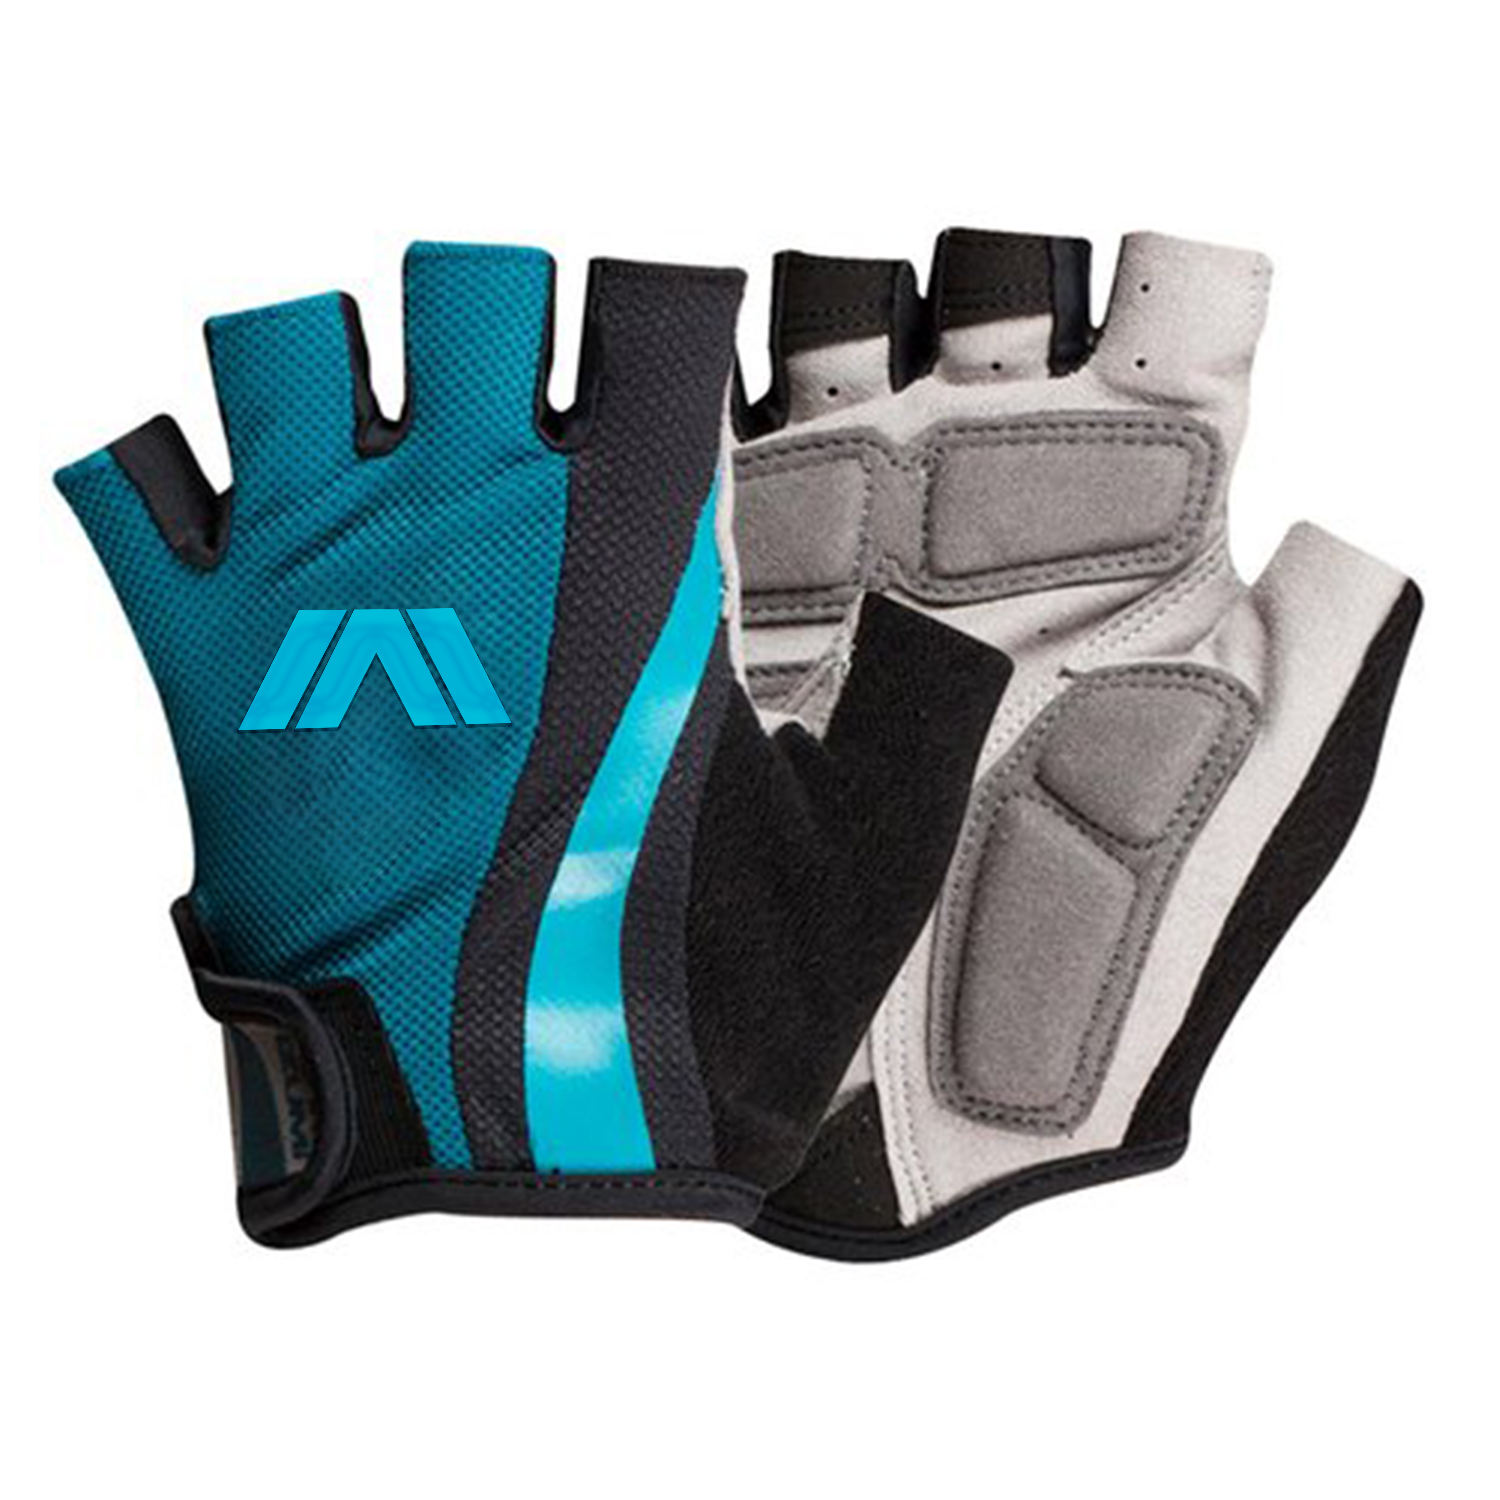 OEM Available Breathable Mesh Full Finger Gel Motorcycle Riding Bike Bicycle Cycling Gloves